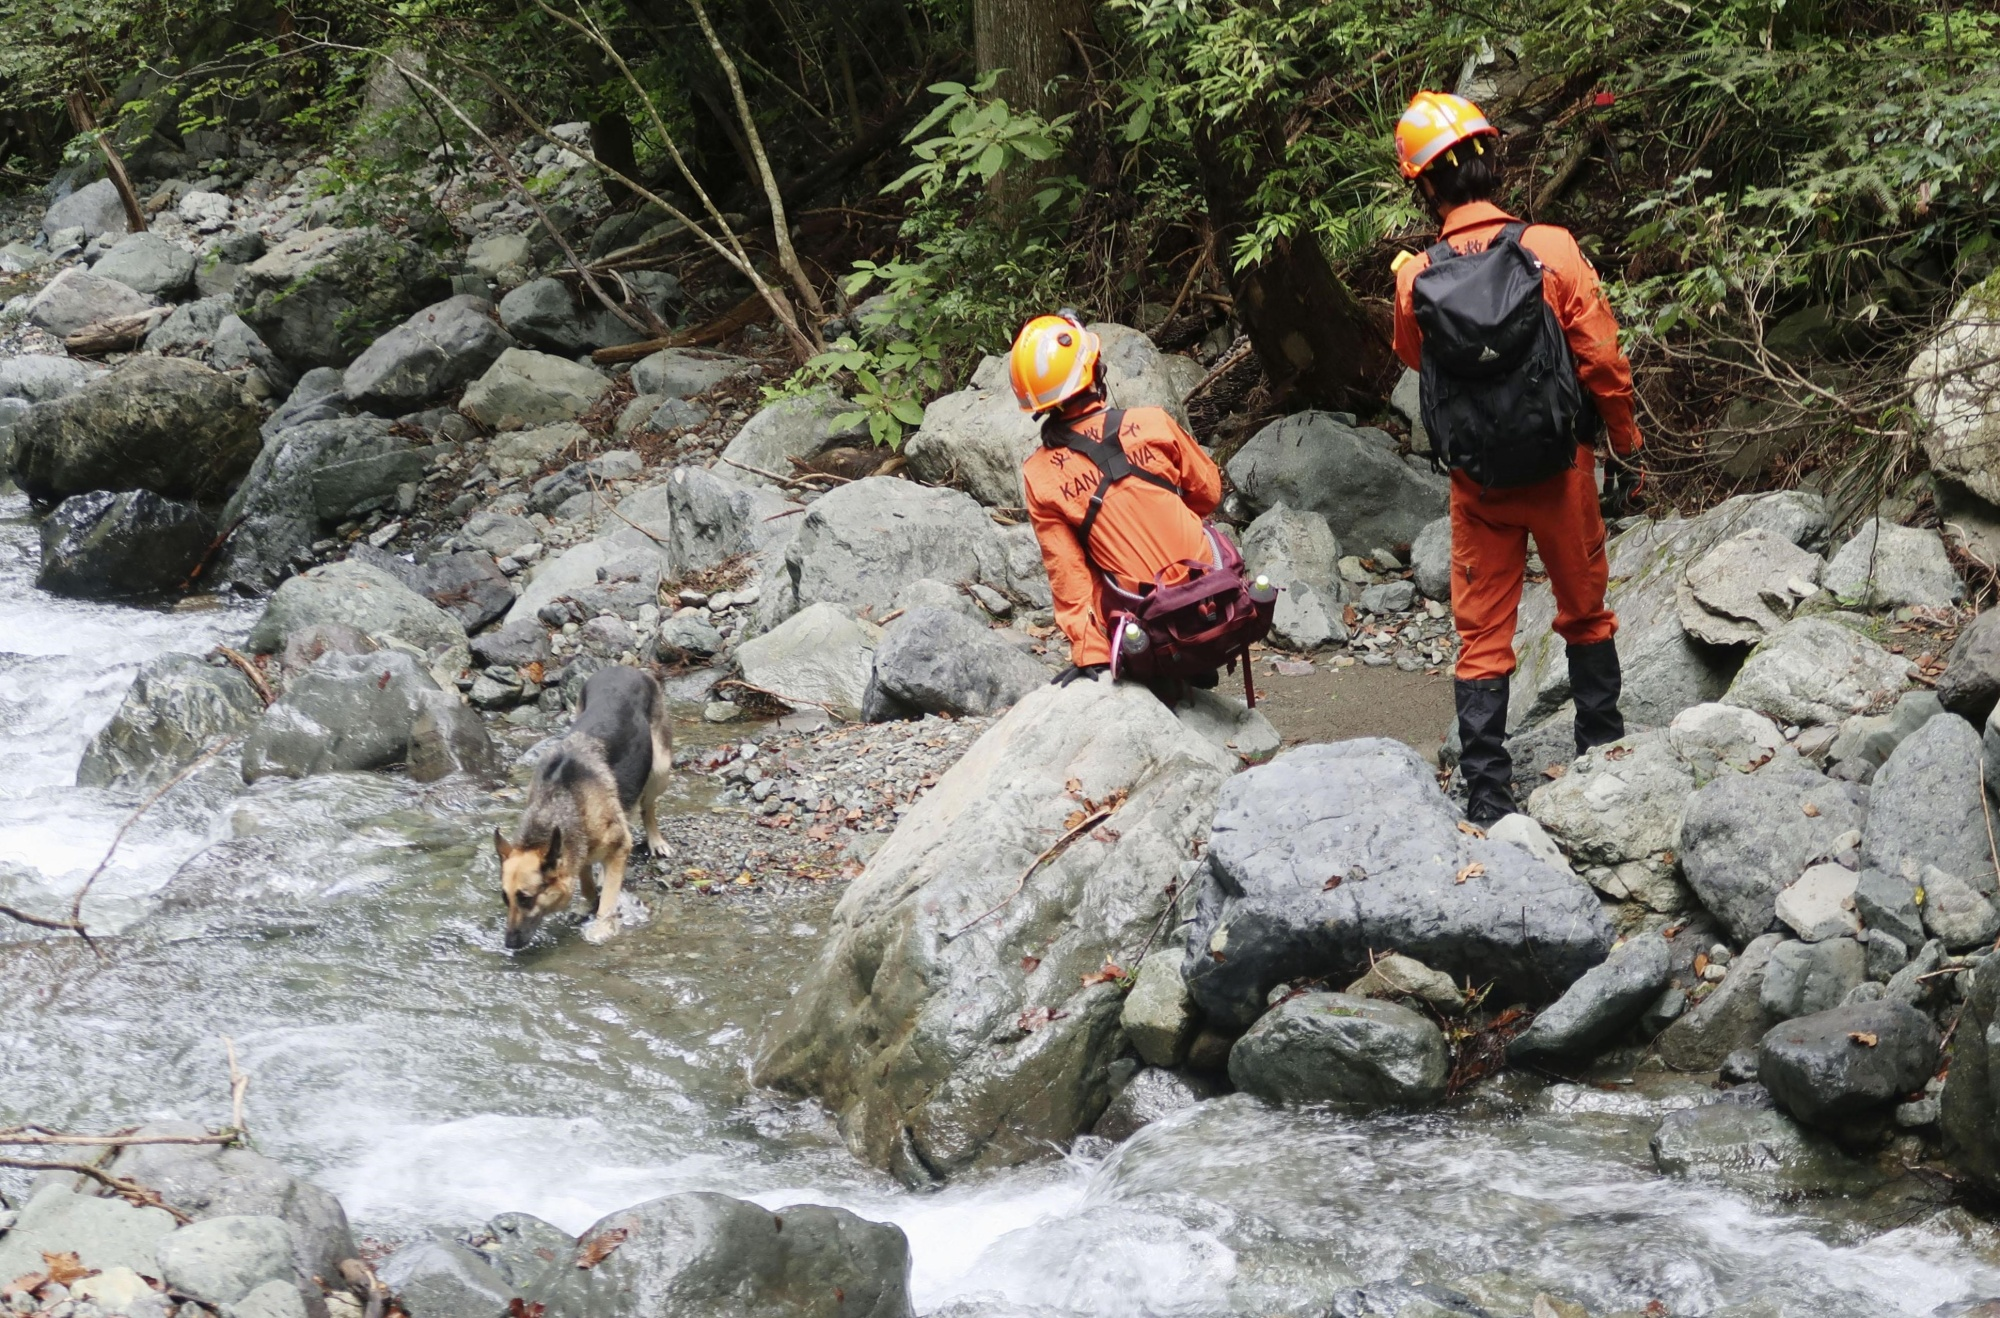 Rescuers and a rescue dog search a river near a camp site in Doshi, Yamanashi Prefecture, on Tuesday, after a 7-year-old girl went missing on Saturday. | KYODO